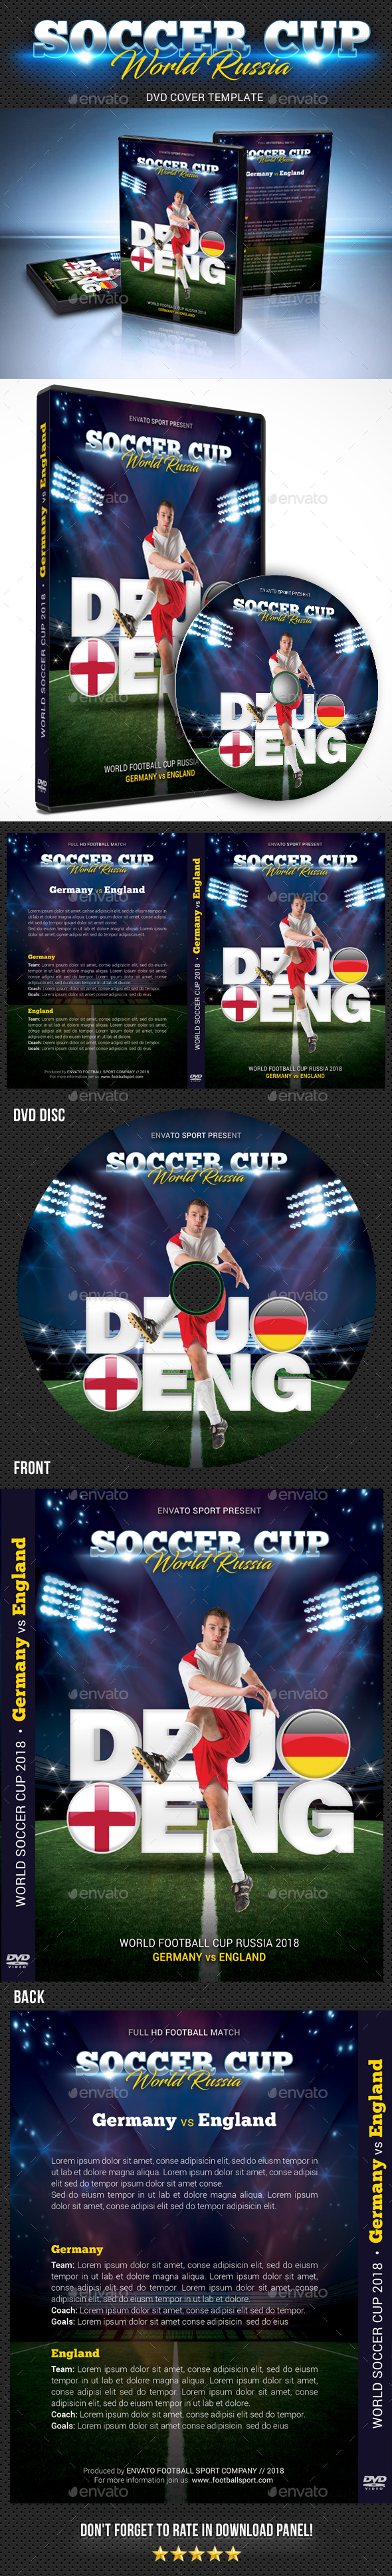 World Soccer Cup Russia 2018 DVD Cover - CD & DVD Artwork Print Templates